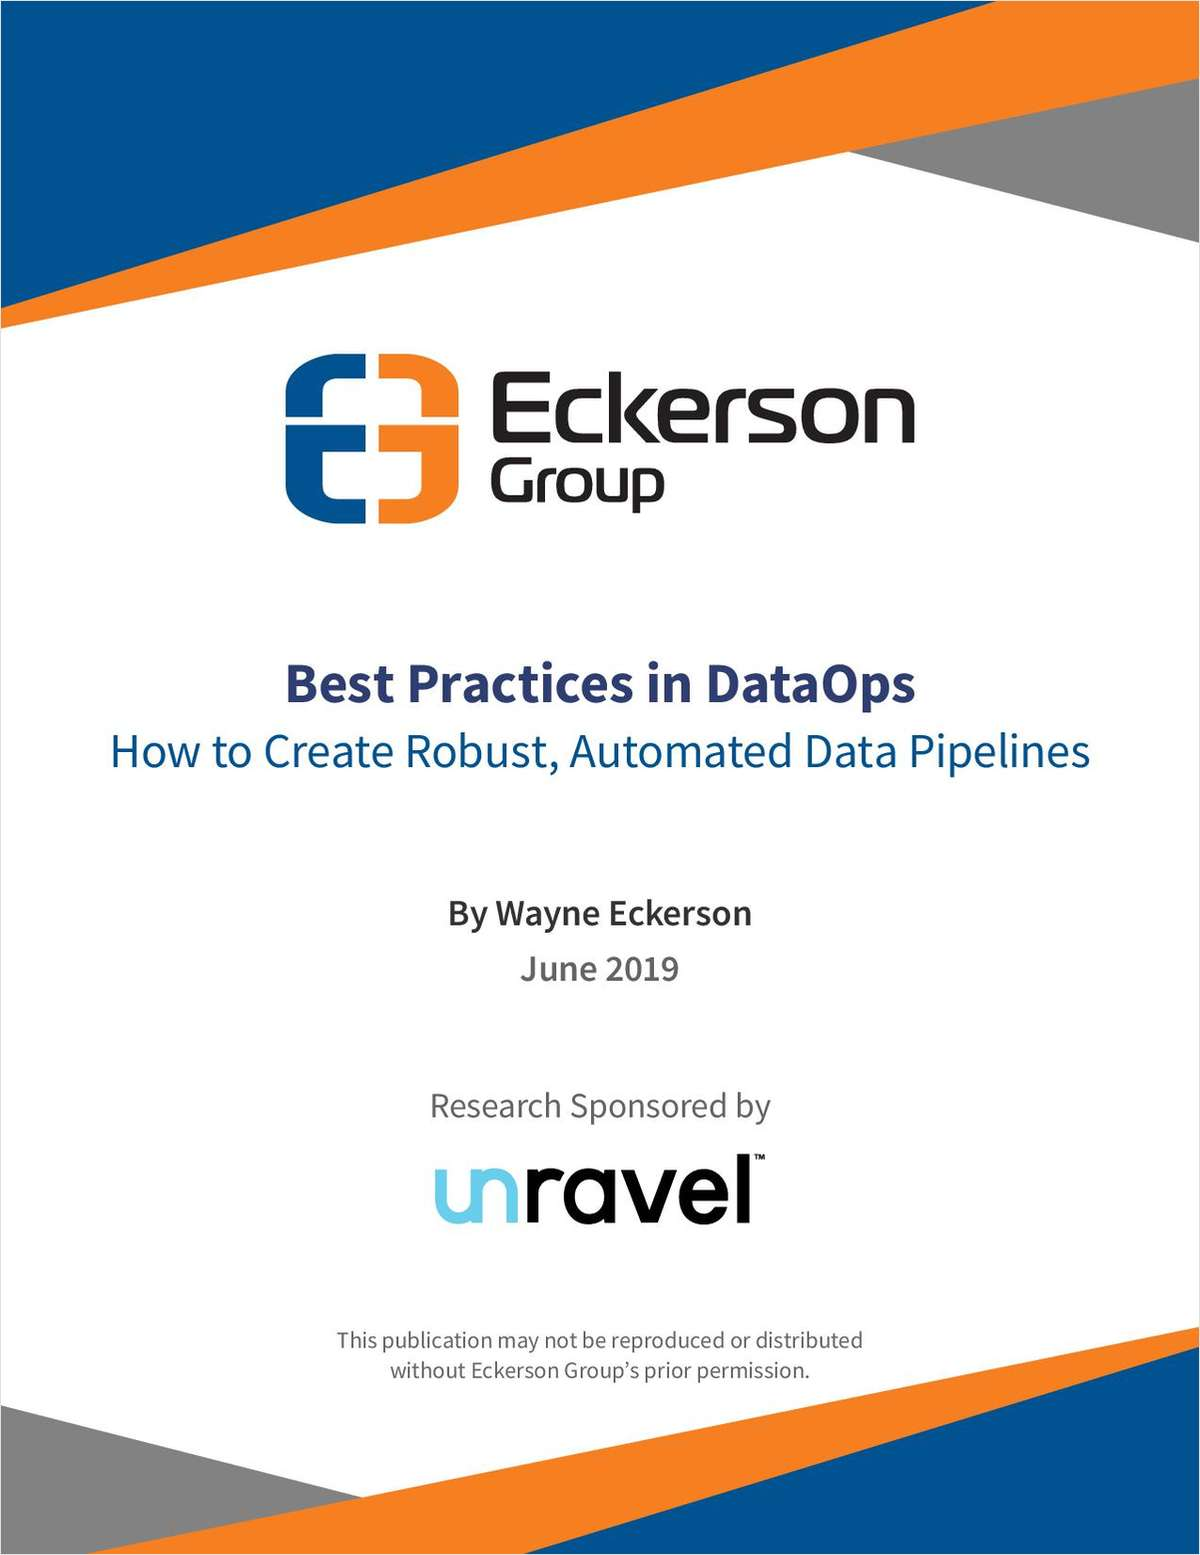 How to Create Robust, Automated Data Pipelines